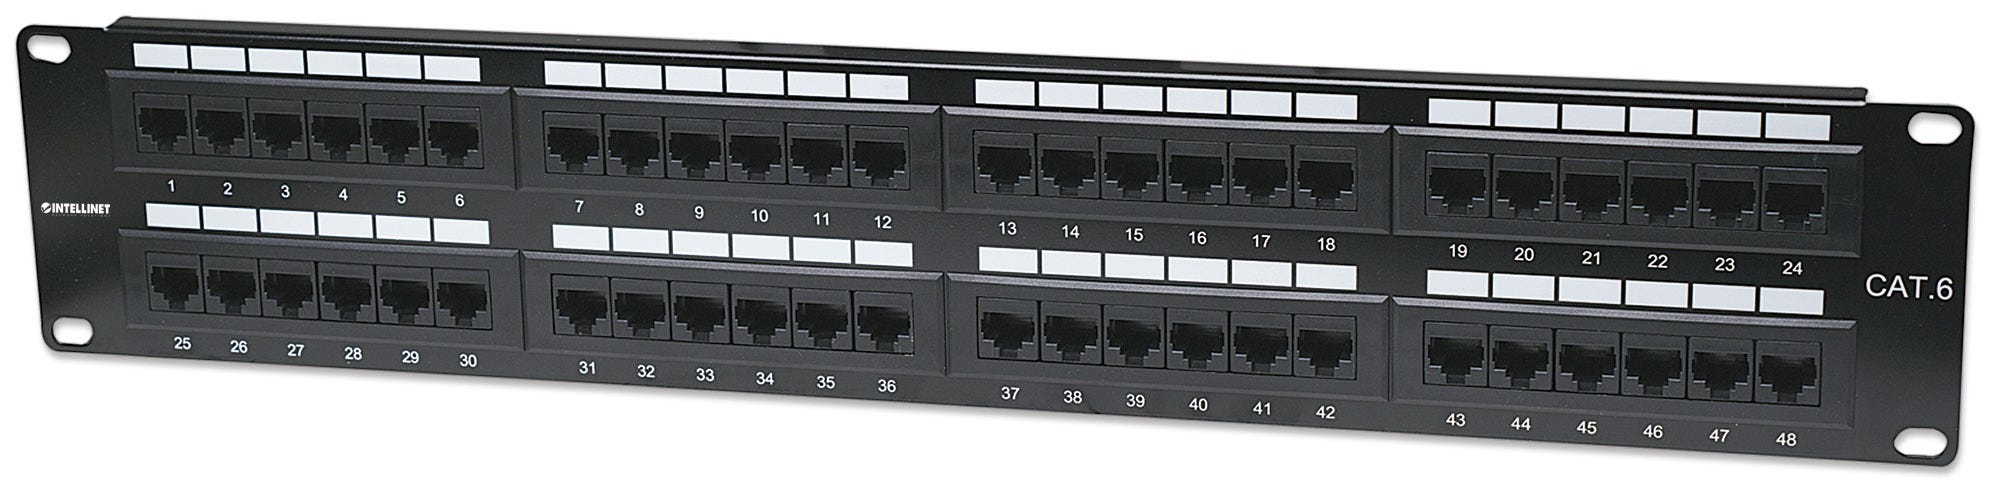 Intellinet                       Cat6 Patch Panel                    48-port Utp 2u                   In 560283